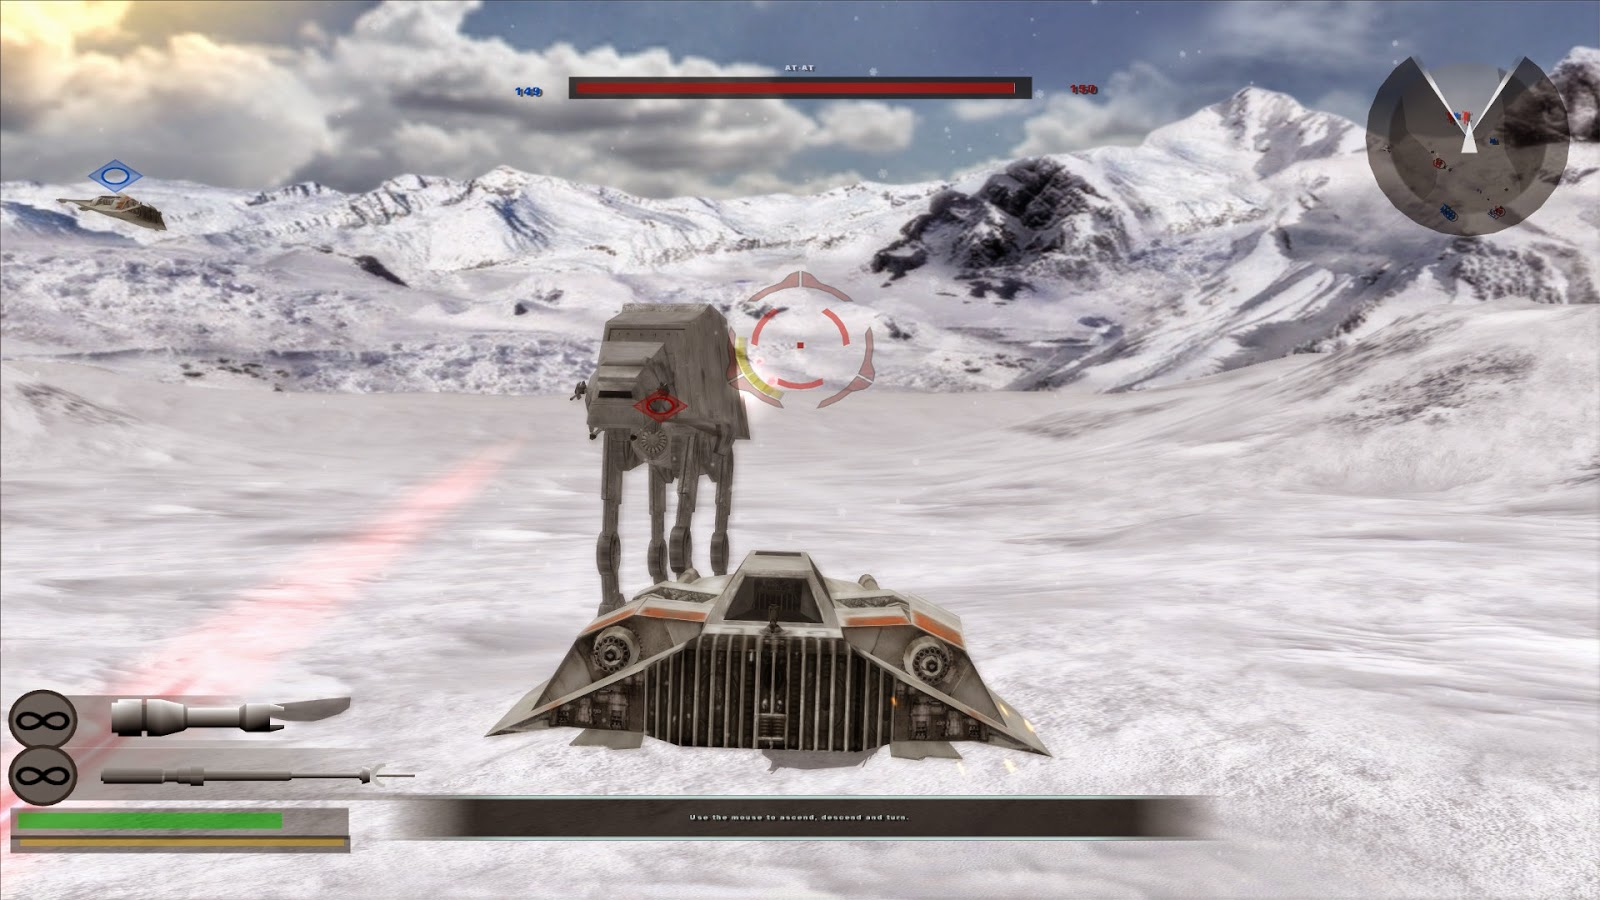 Star Wars: Battlefront II Hoth